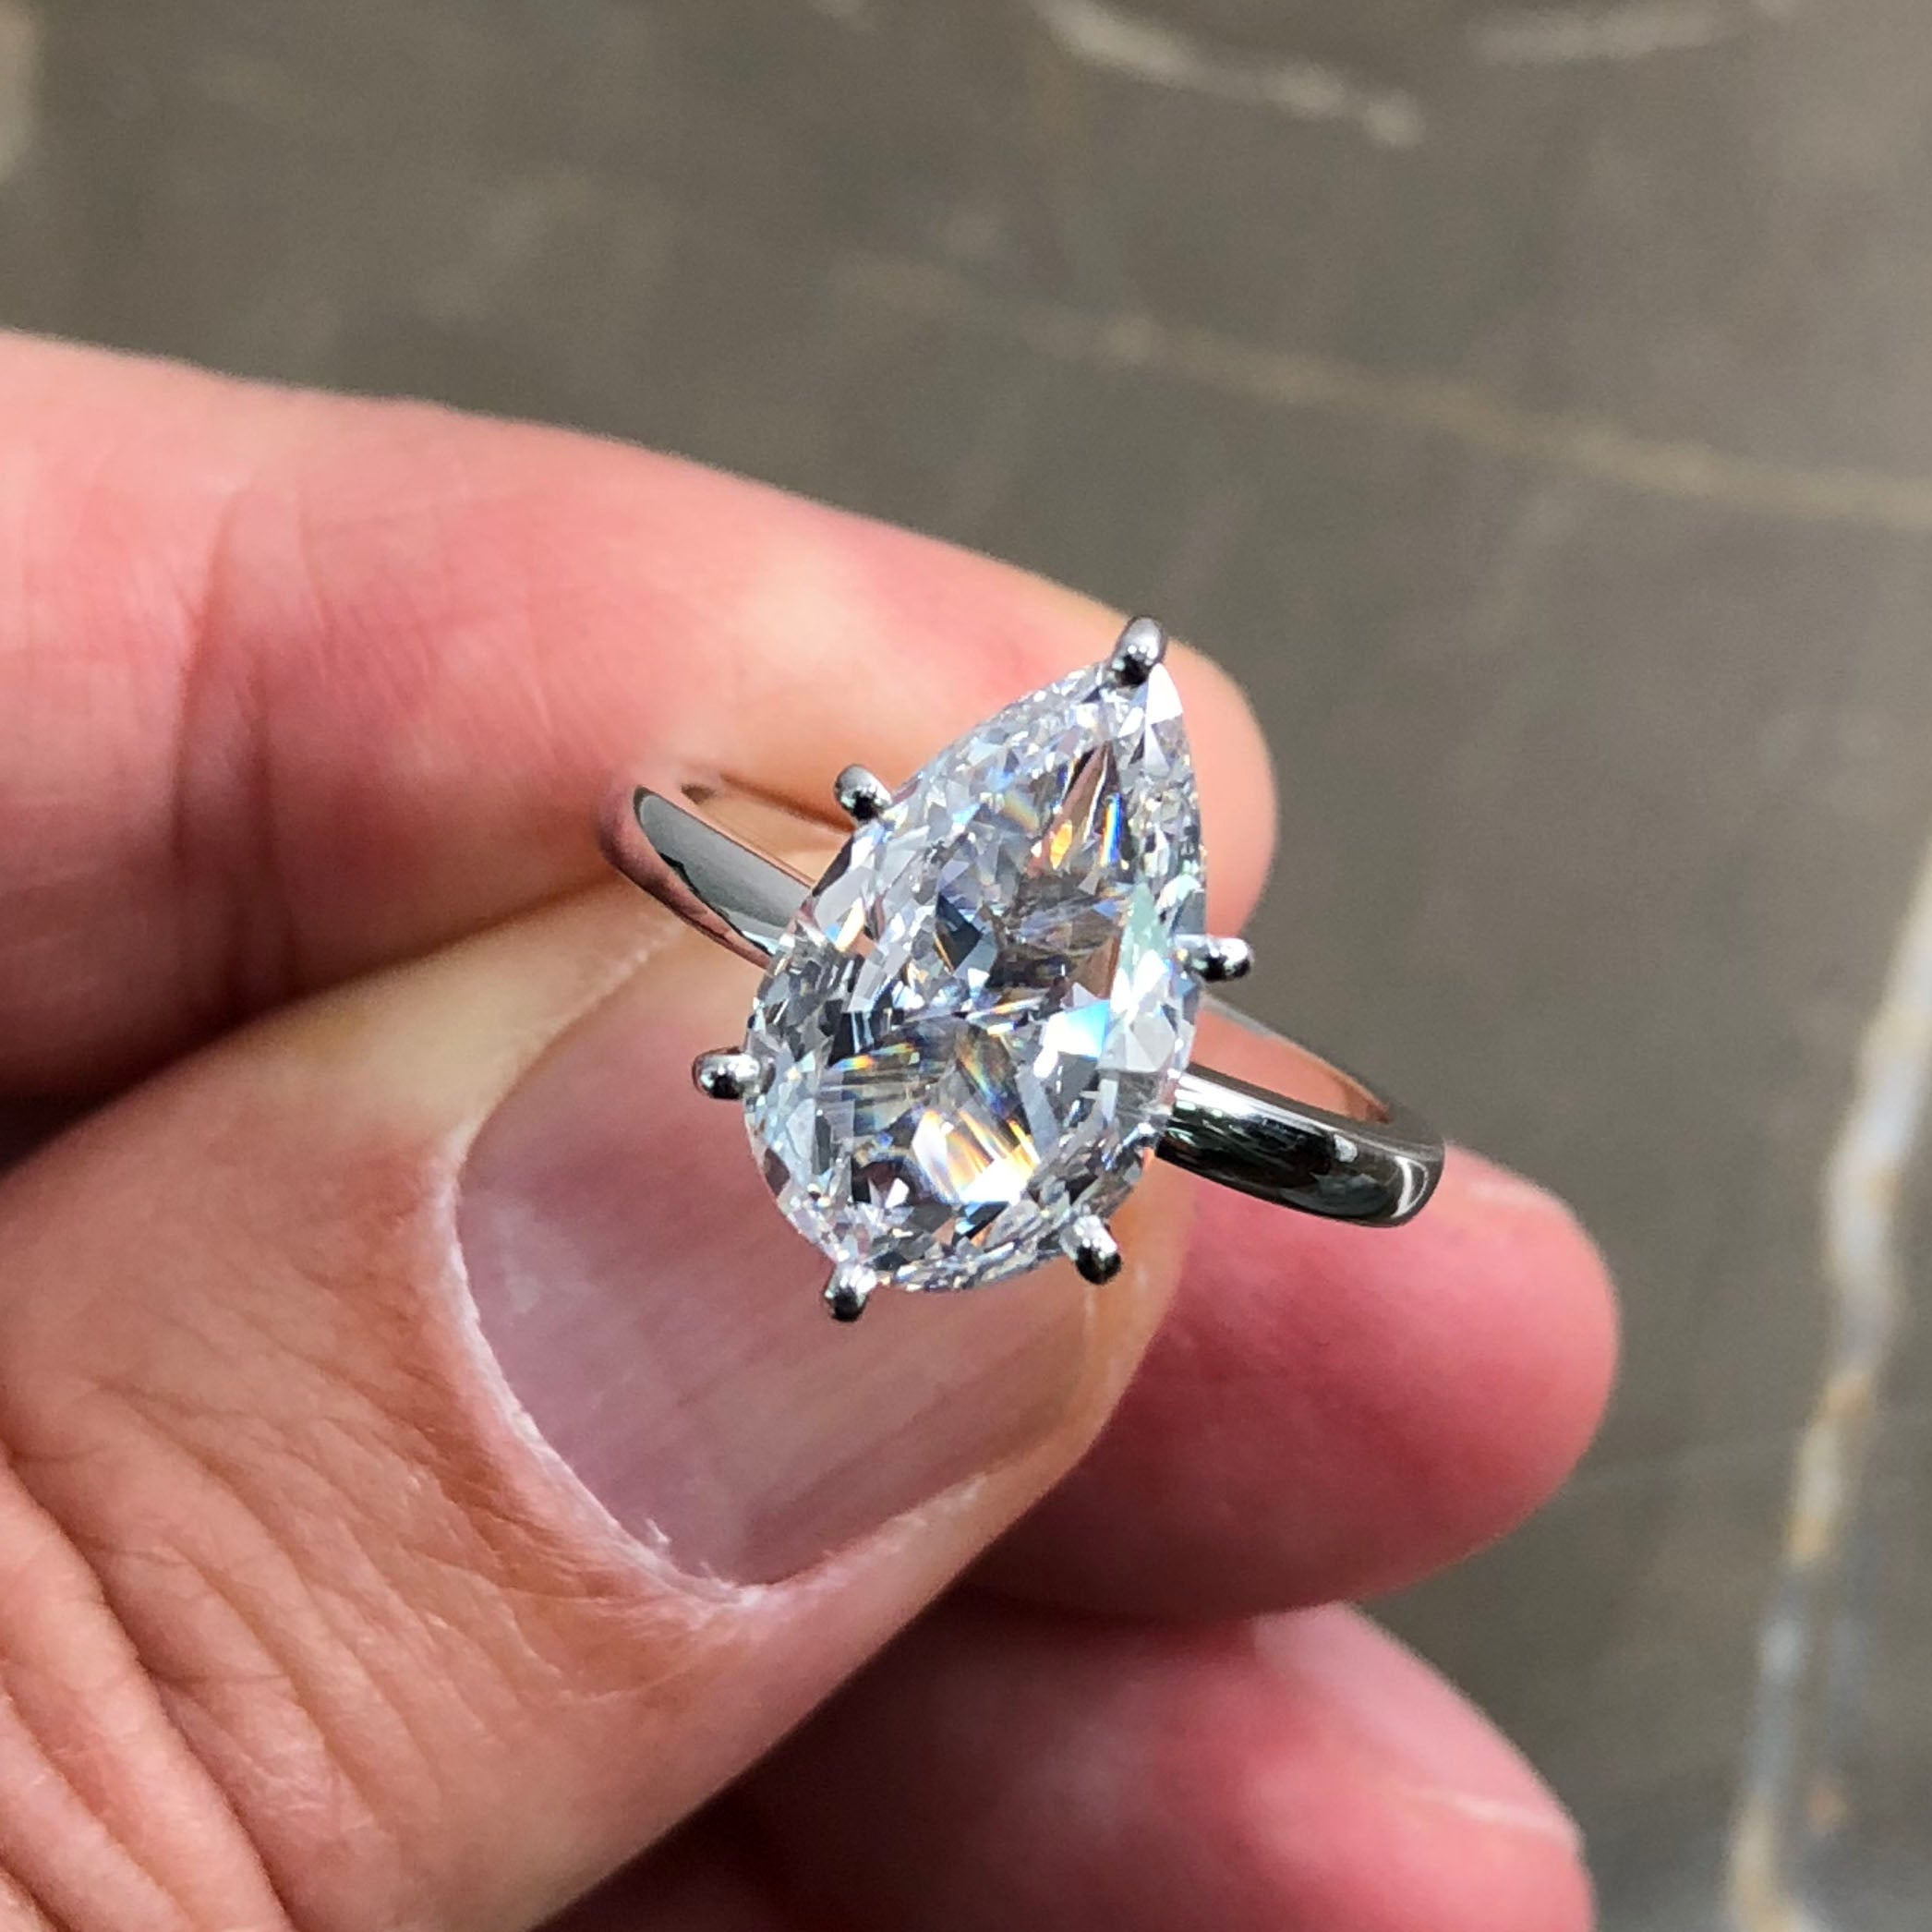 3 Carat Pear Shaped Diamond Engagement Ring - 14K White Gold  J99151. Tap  to expand a9d97ec7f